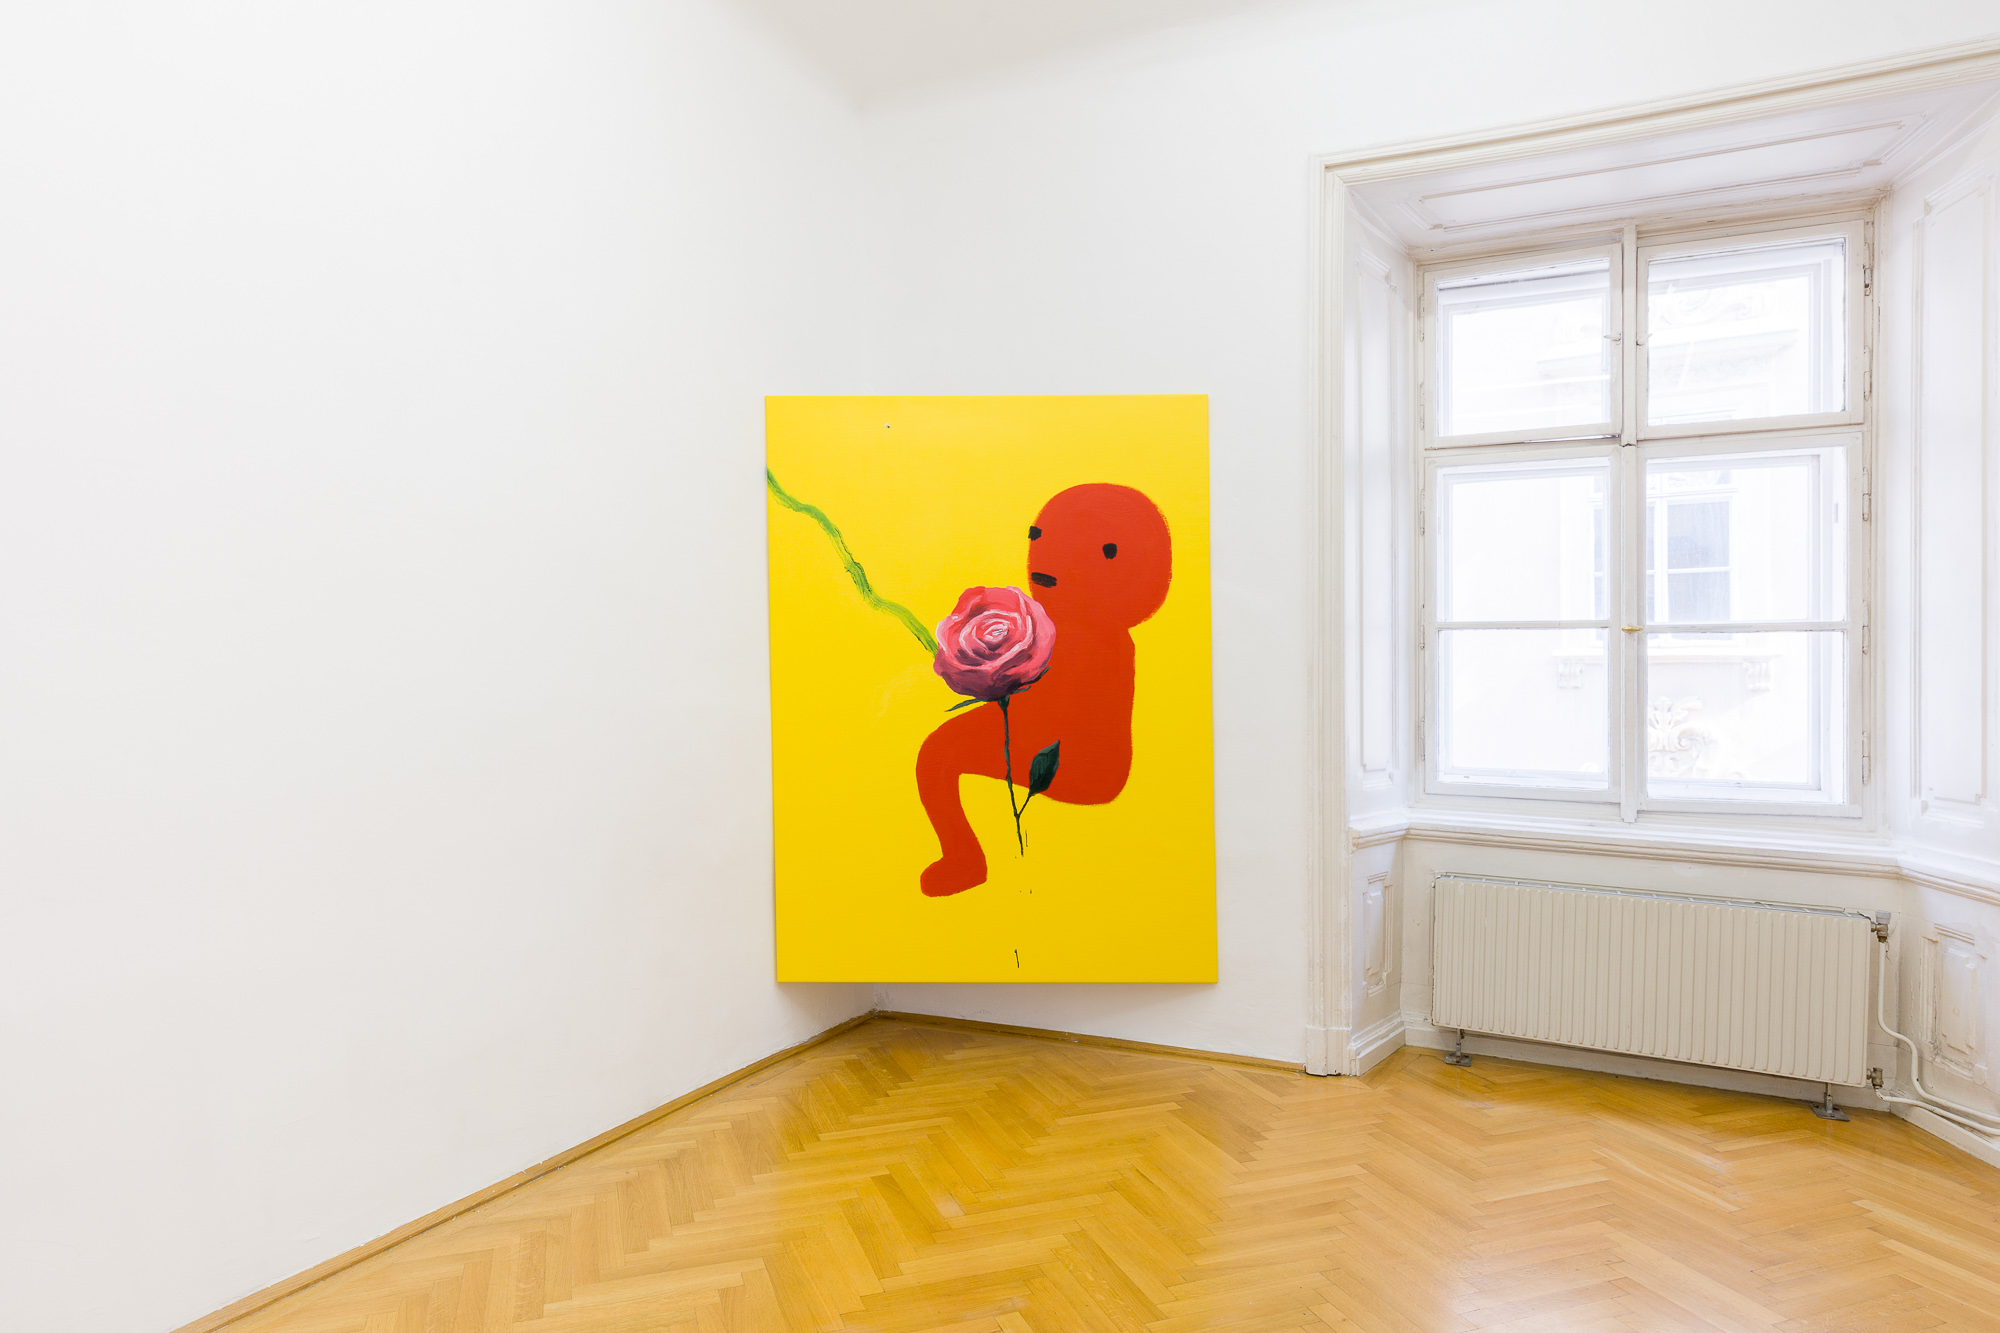 2018_09_15_Andrew Birk at Sort Vienna_by kunst-dokumentation.com_017_web.jpg